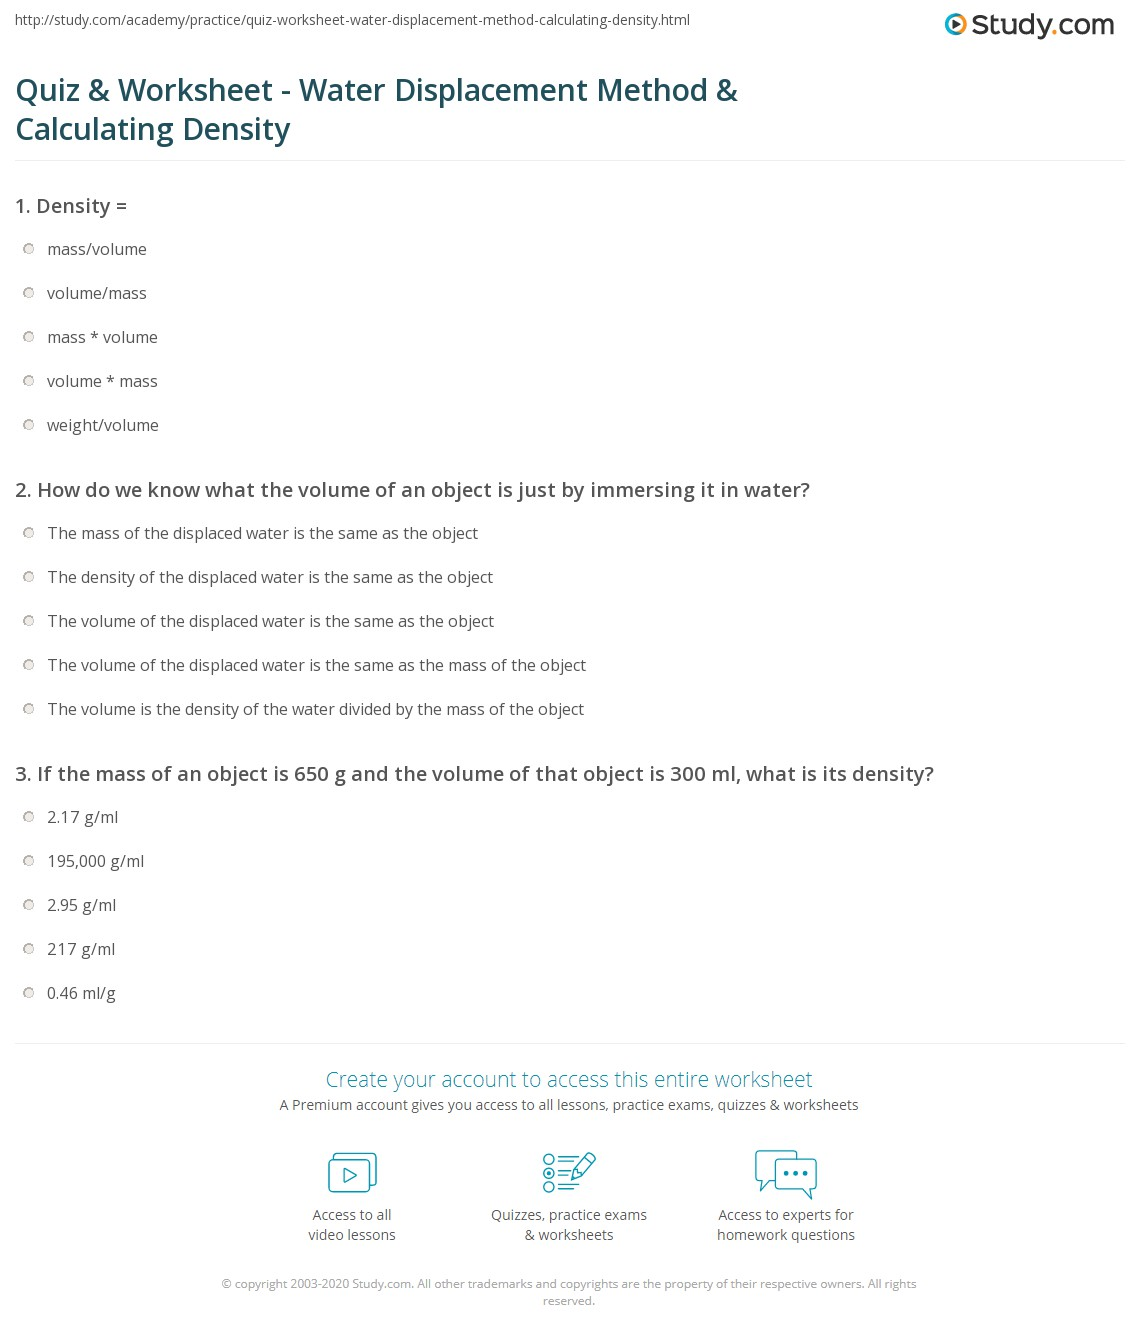 quiz worksheet water displacement method calculating density. Black Bedroom Furniture Sets. Home Design Ideas